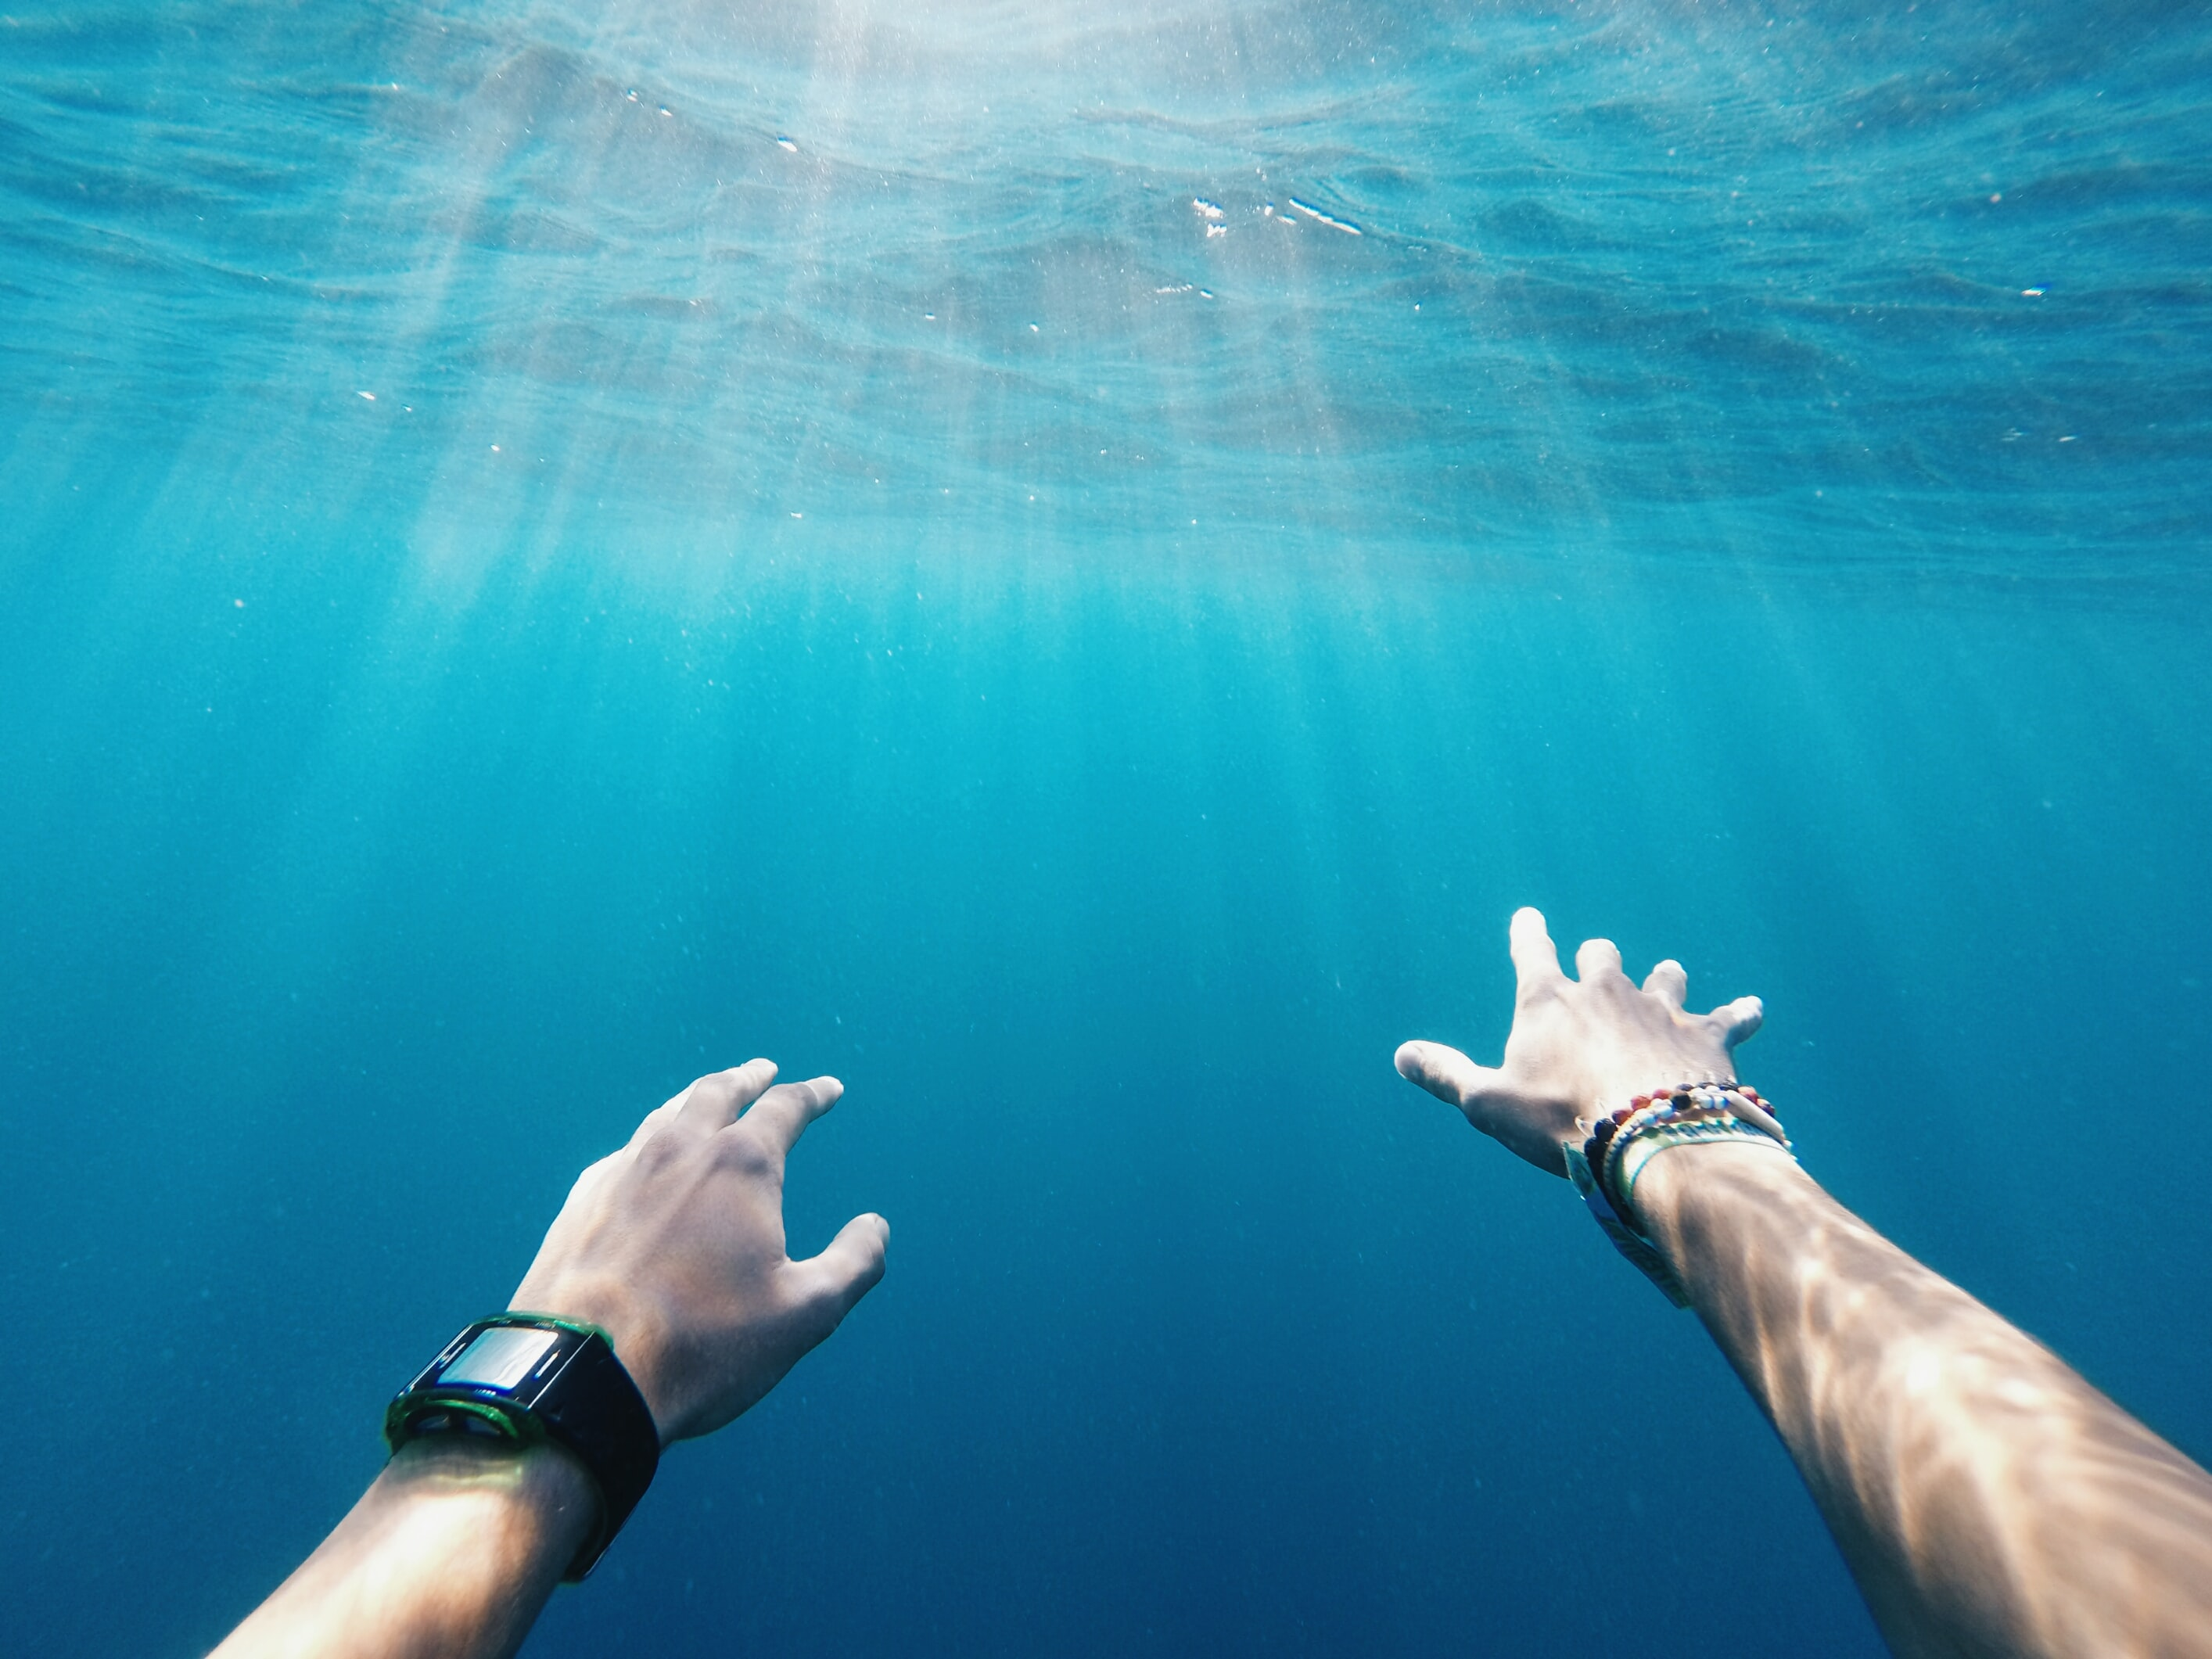 A person wearing a smartwatch reaching out underwater.